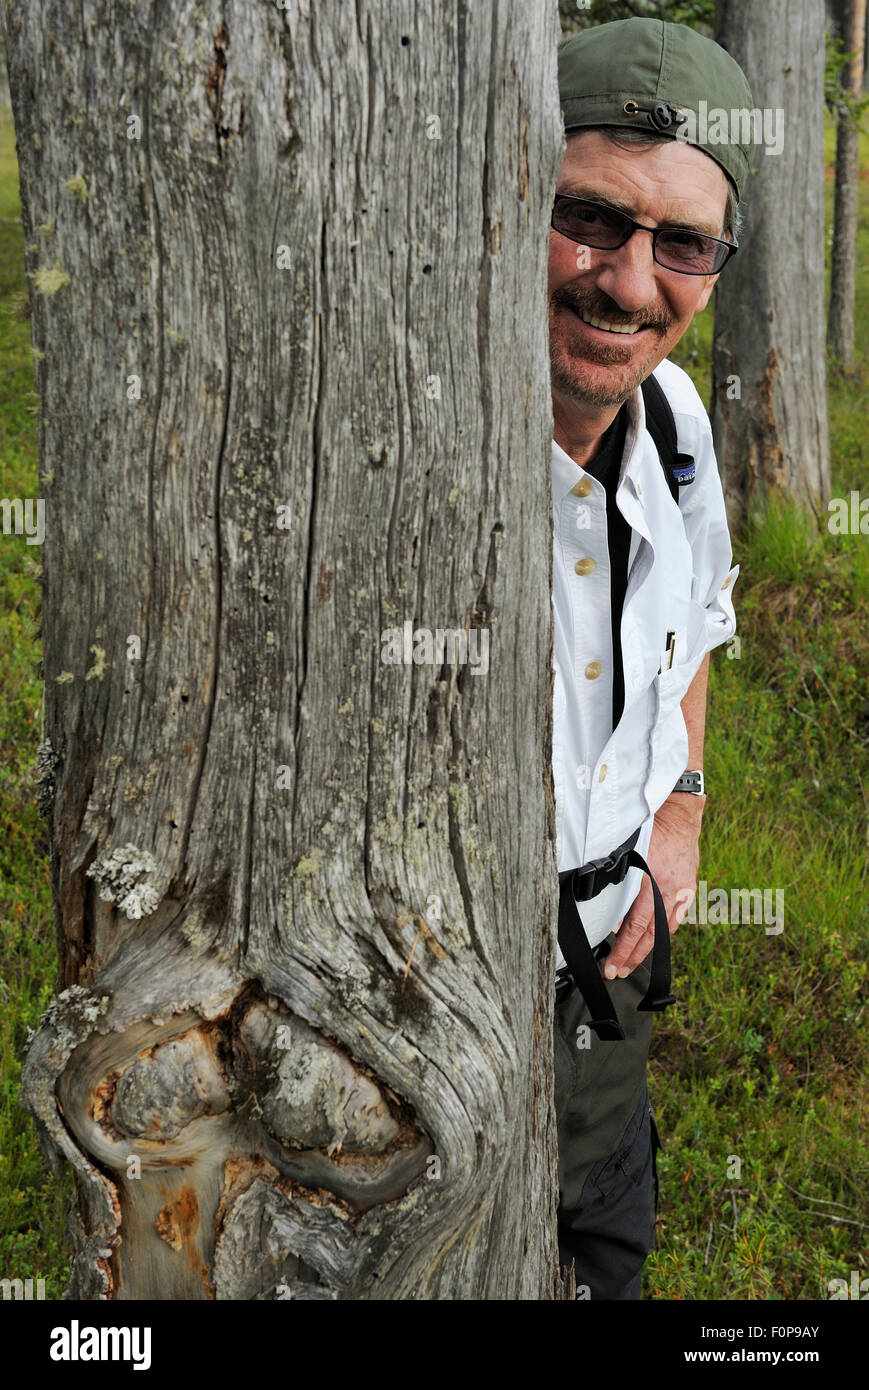 National Geographic reporter, Don Belt, on a bear watching trip in Kuhmo, Finland, July 2009 - Stock Image